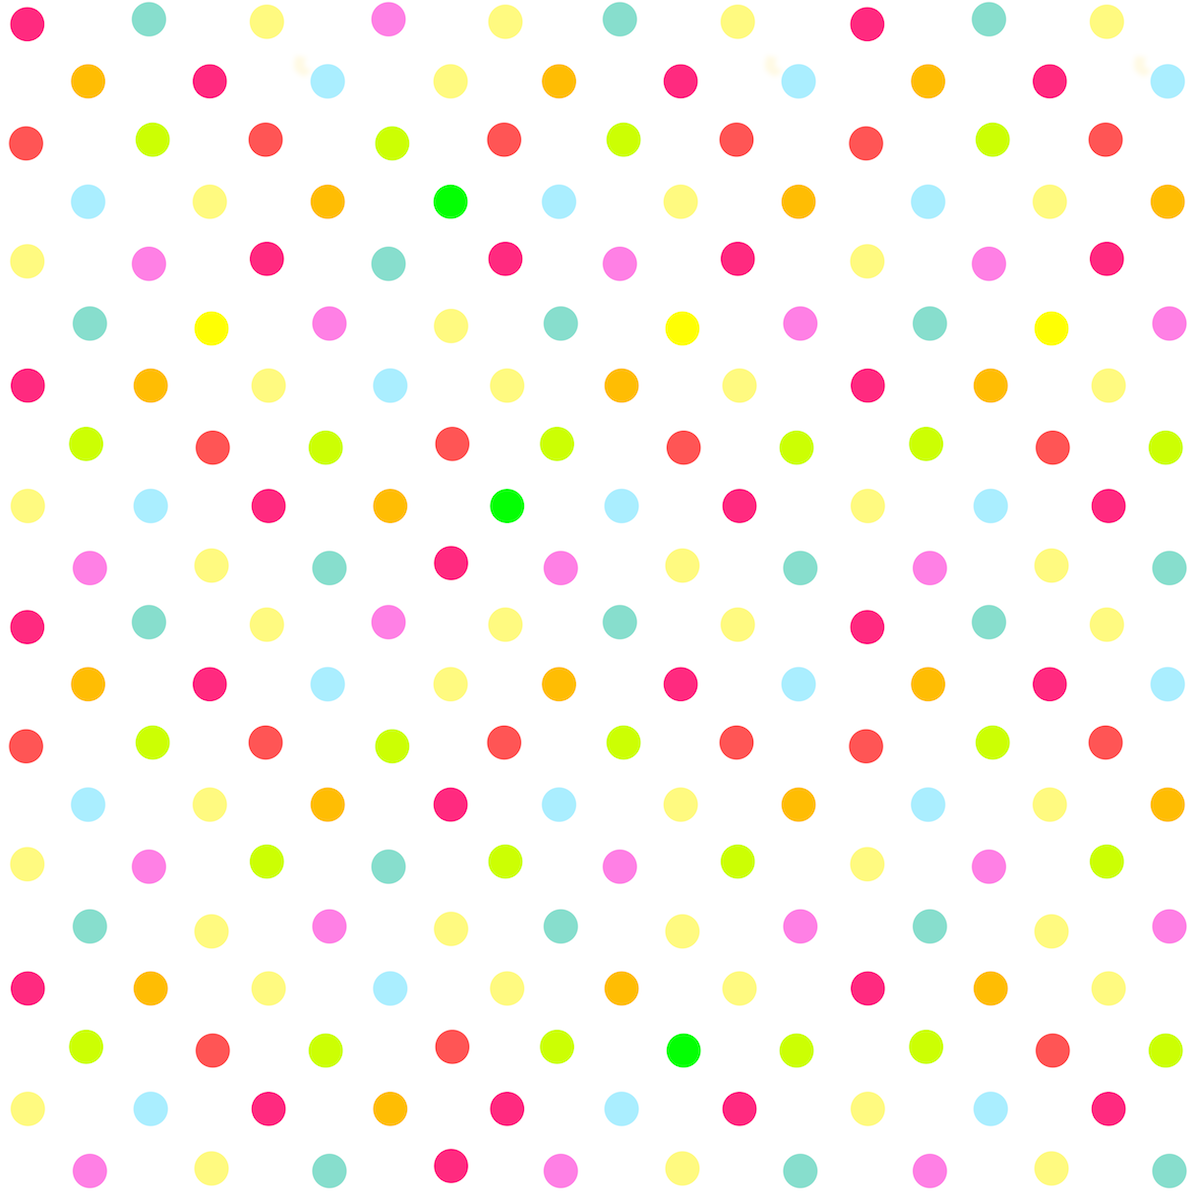 Free digital multicolored polka dot scrapbooking paper